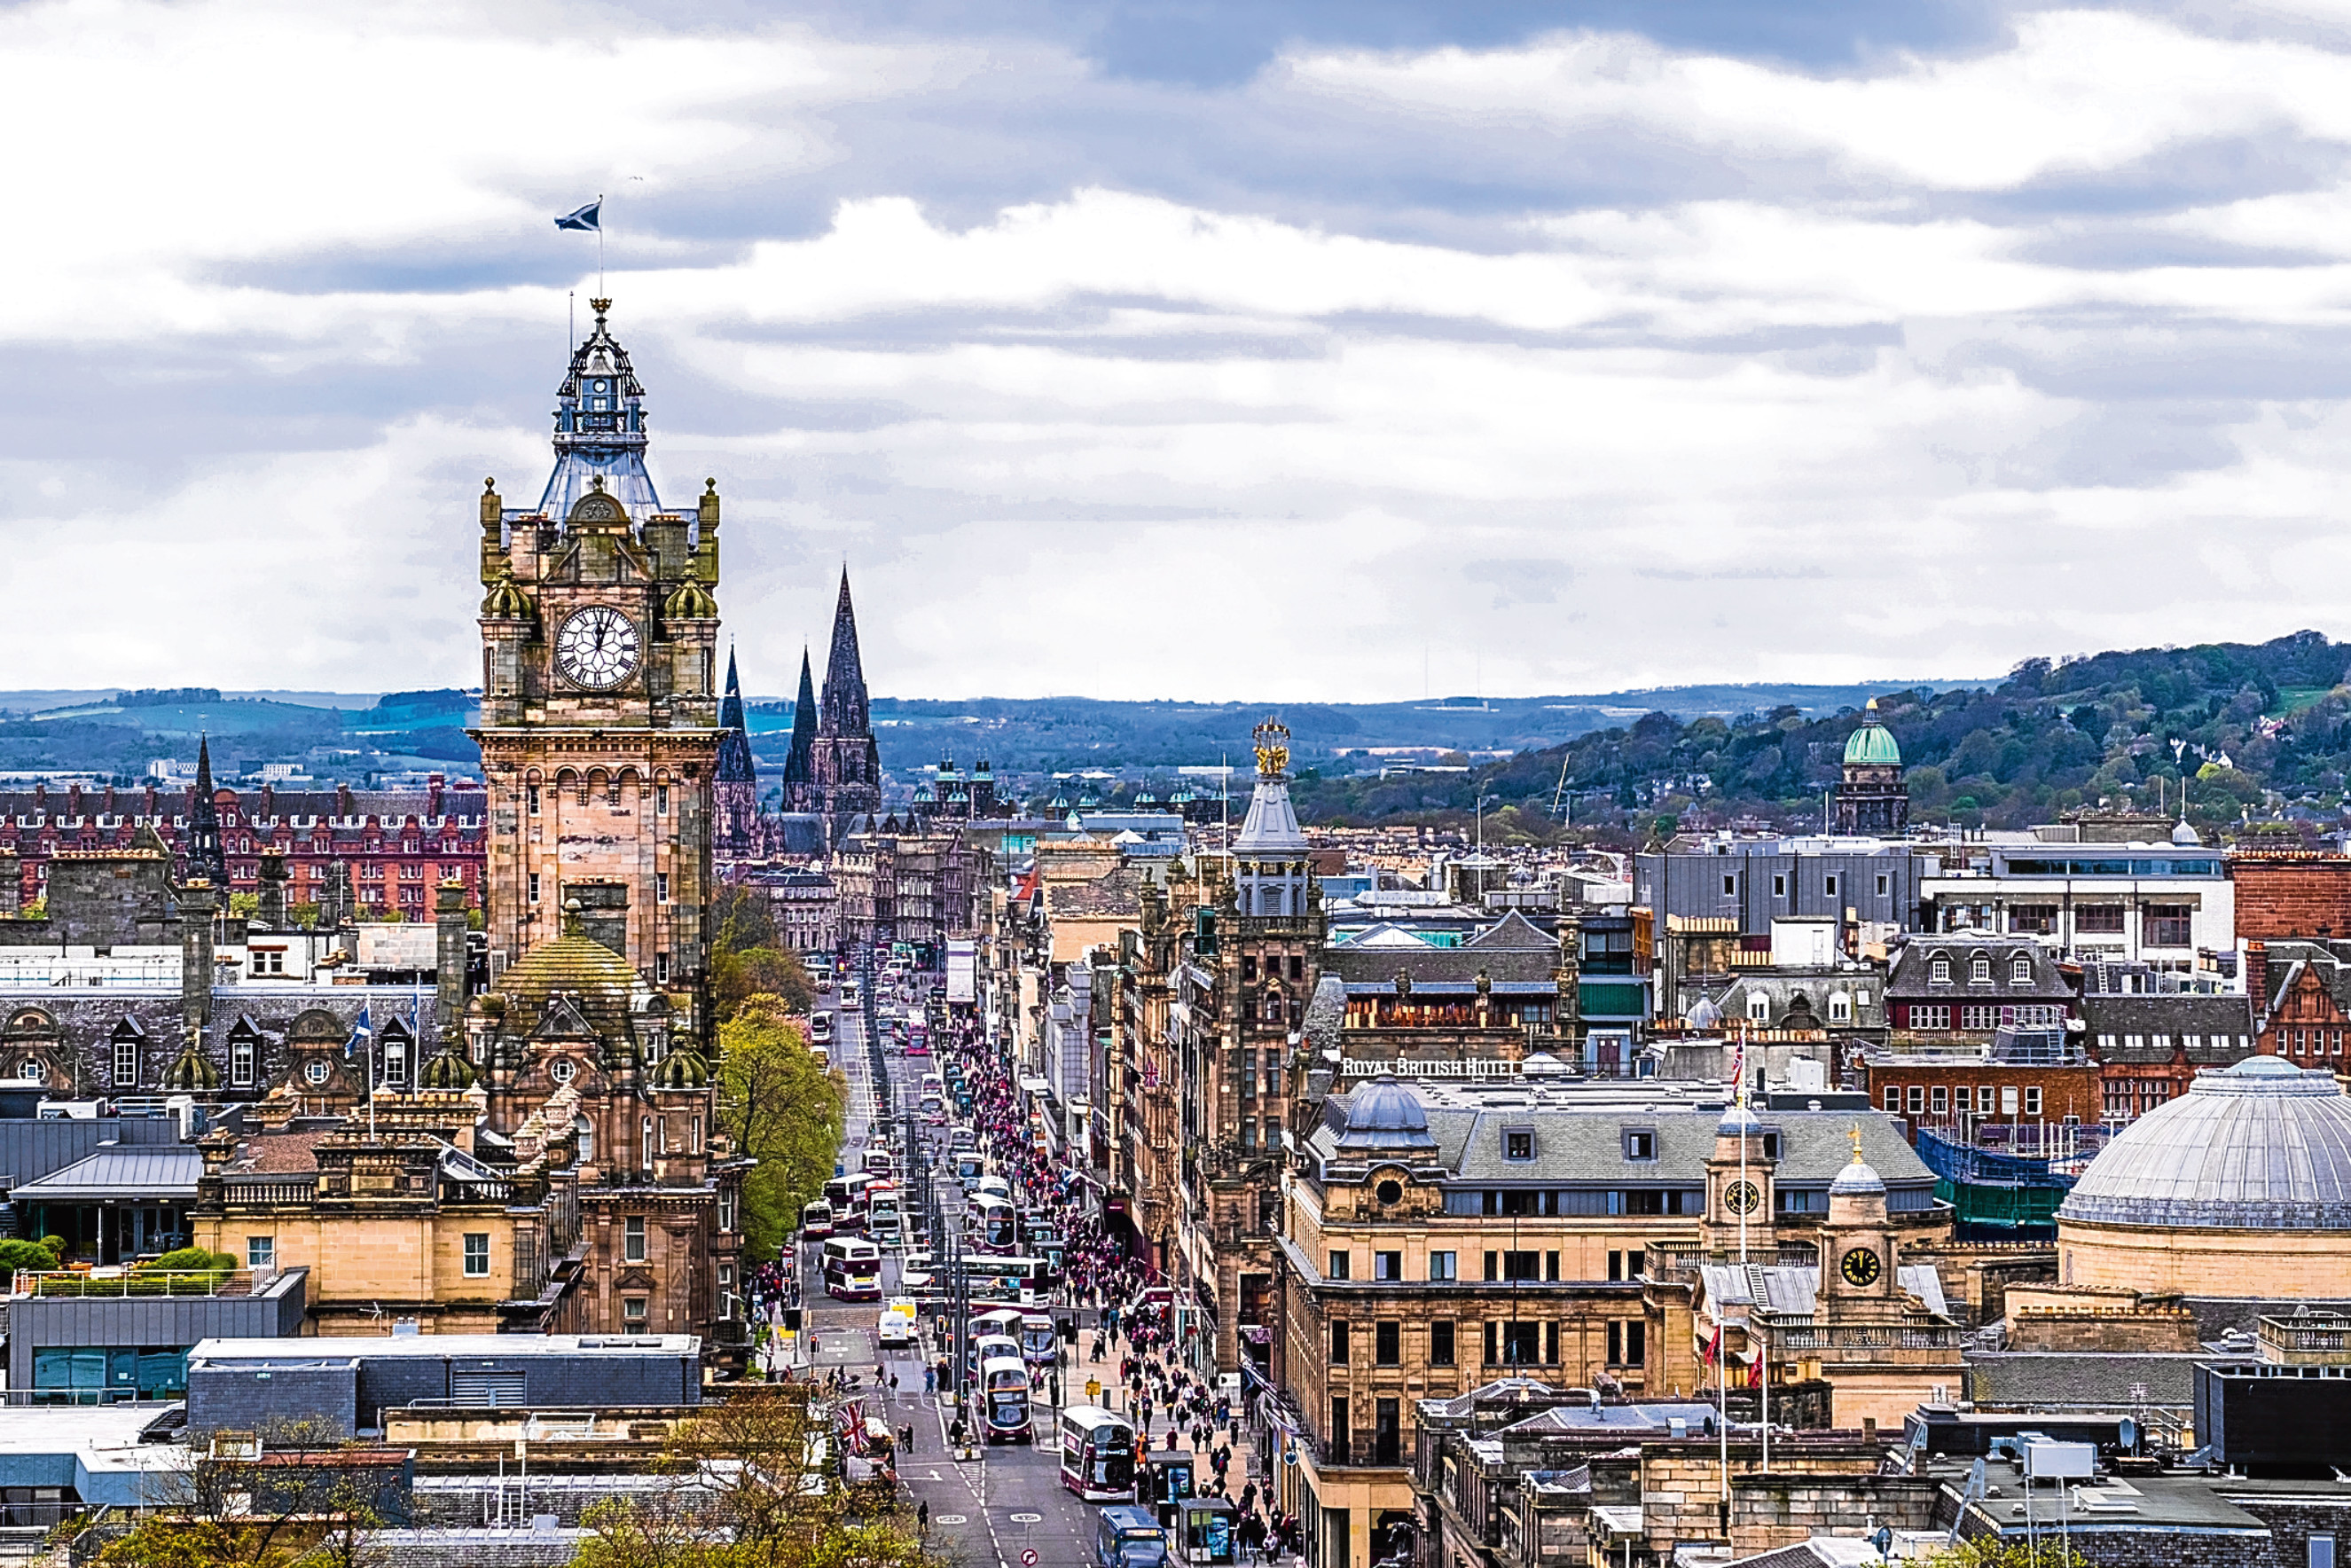 Edinburgh has been found to be the best UK city to start an AirBnb business.